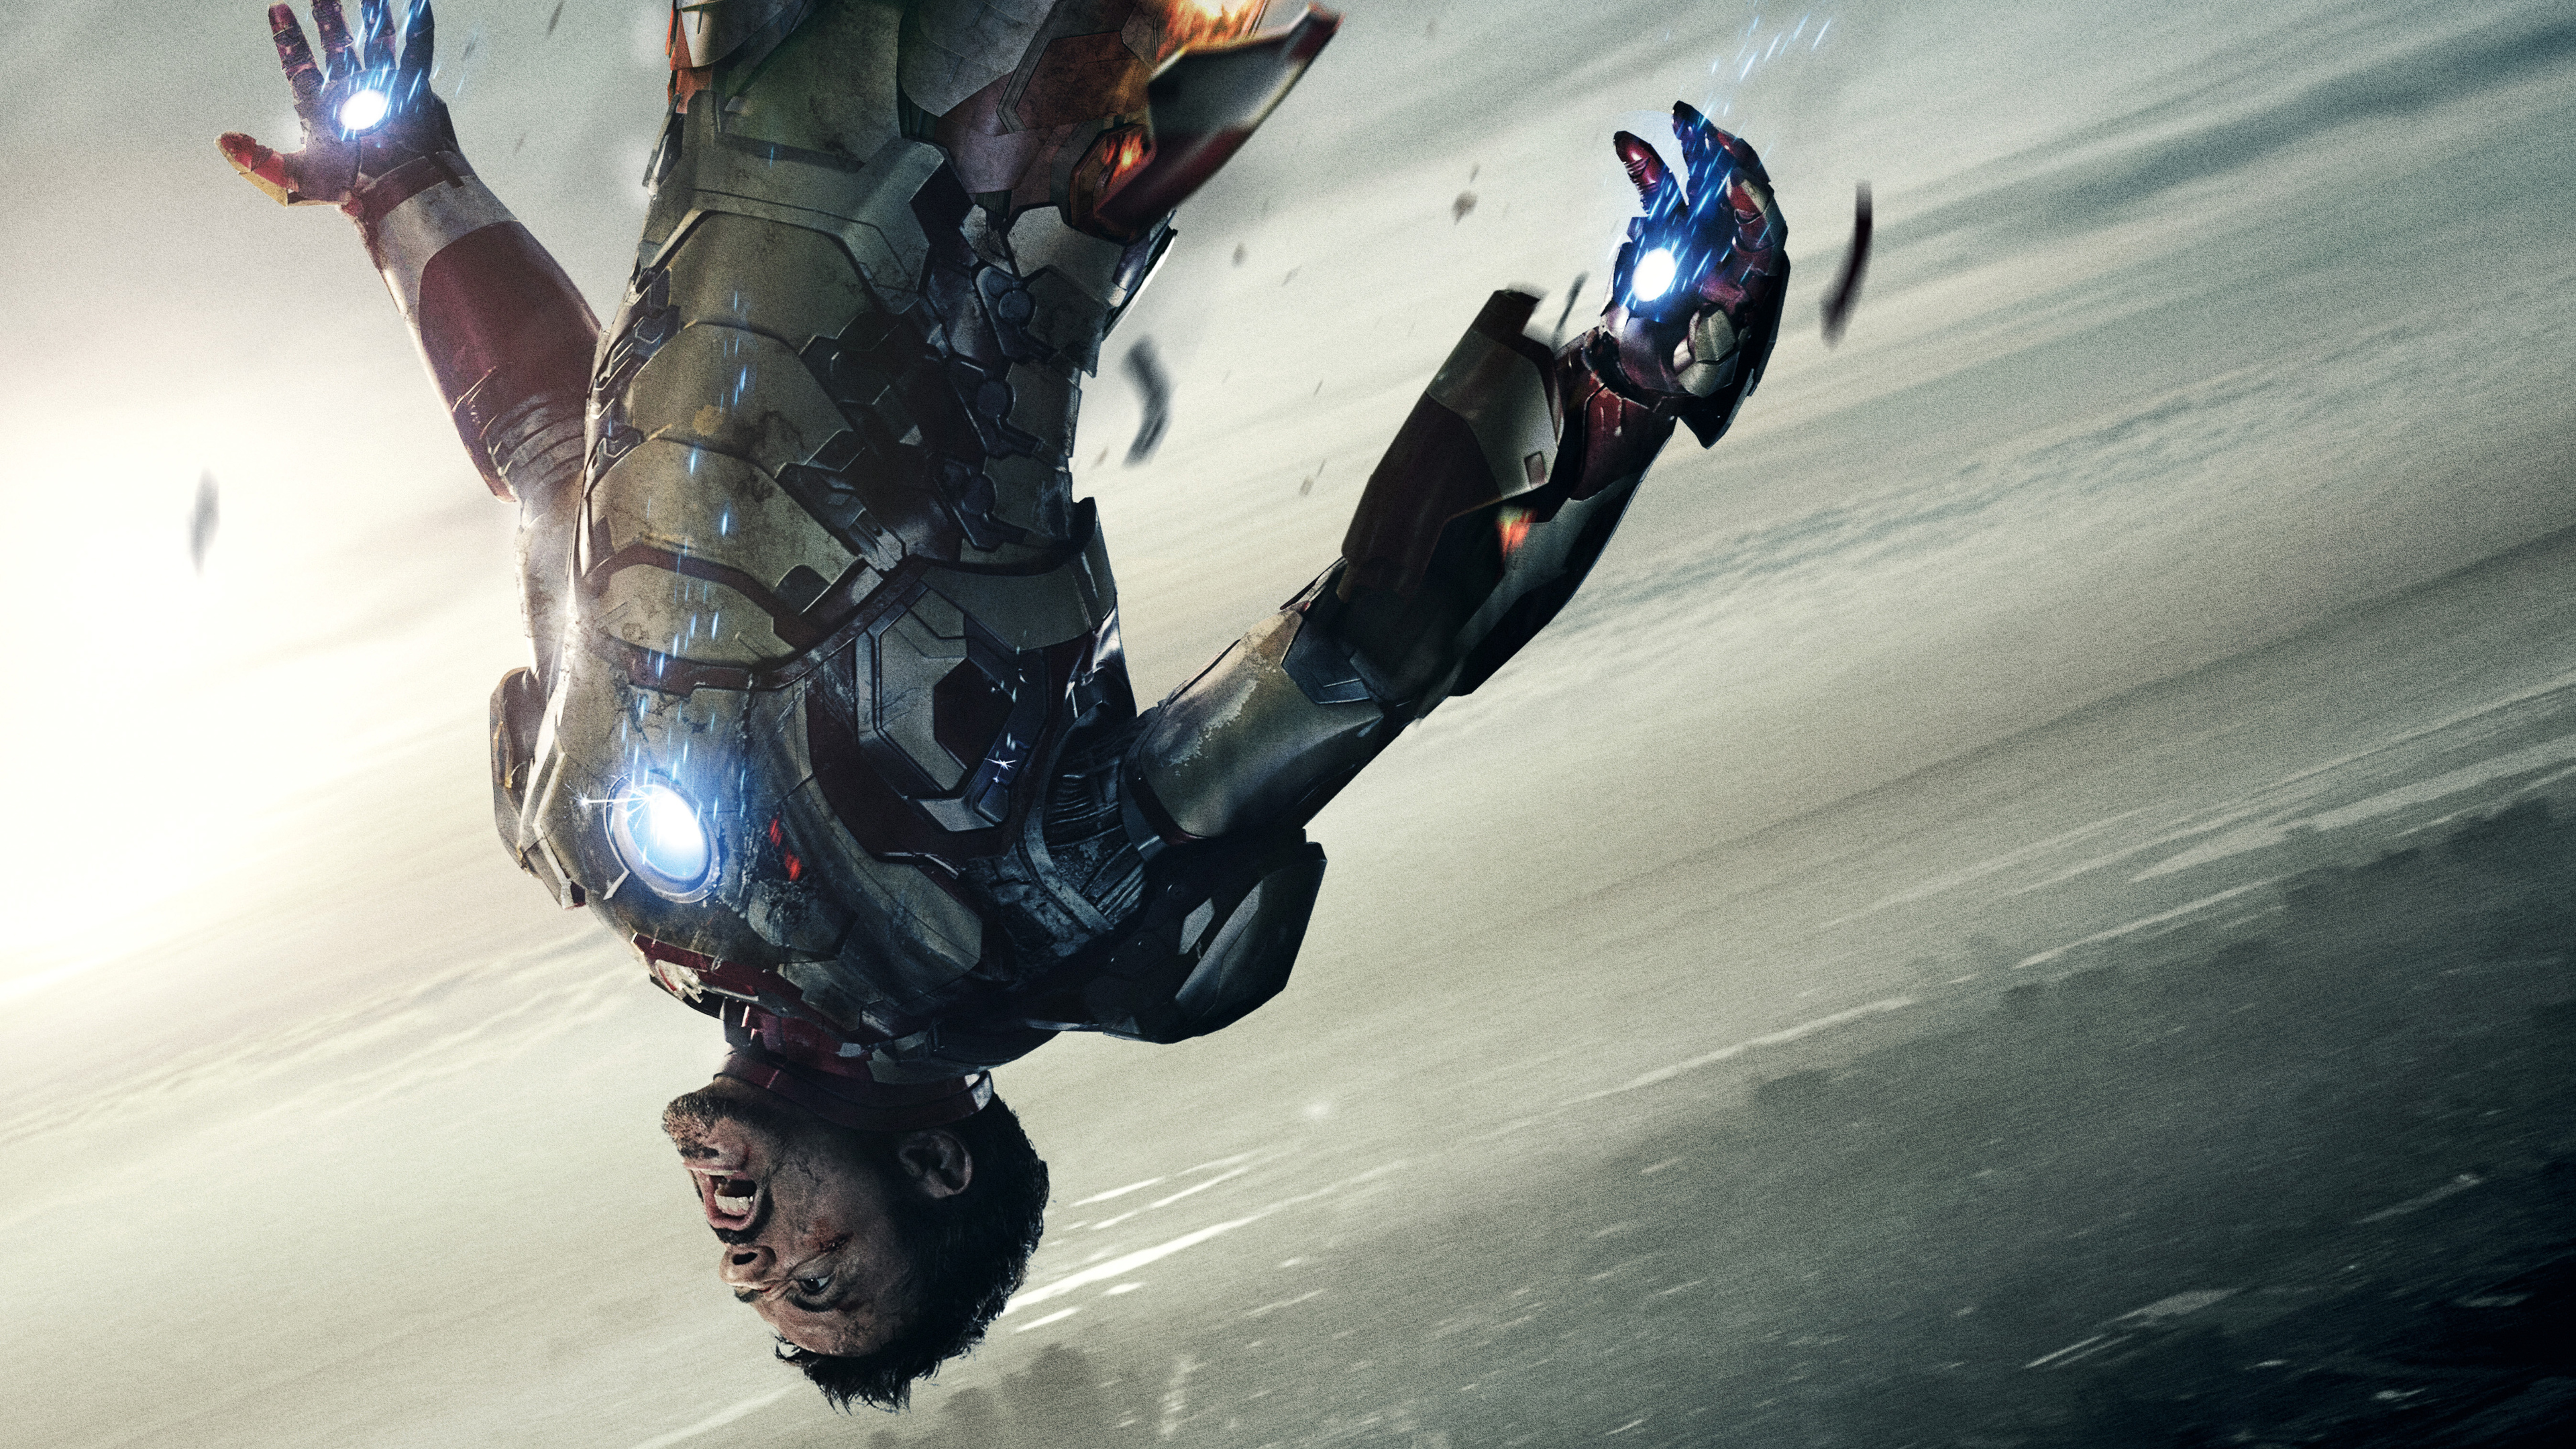 iron man falling out 4k 1553071731 - Iron Man Falling Out 4k - superheroes wallpapers, movies wallpapers, iron man wallpapers, hd-wallpapers, 4k-wallpapers